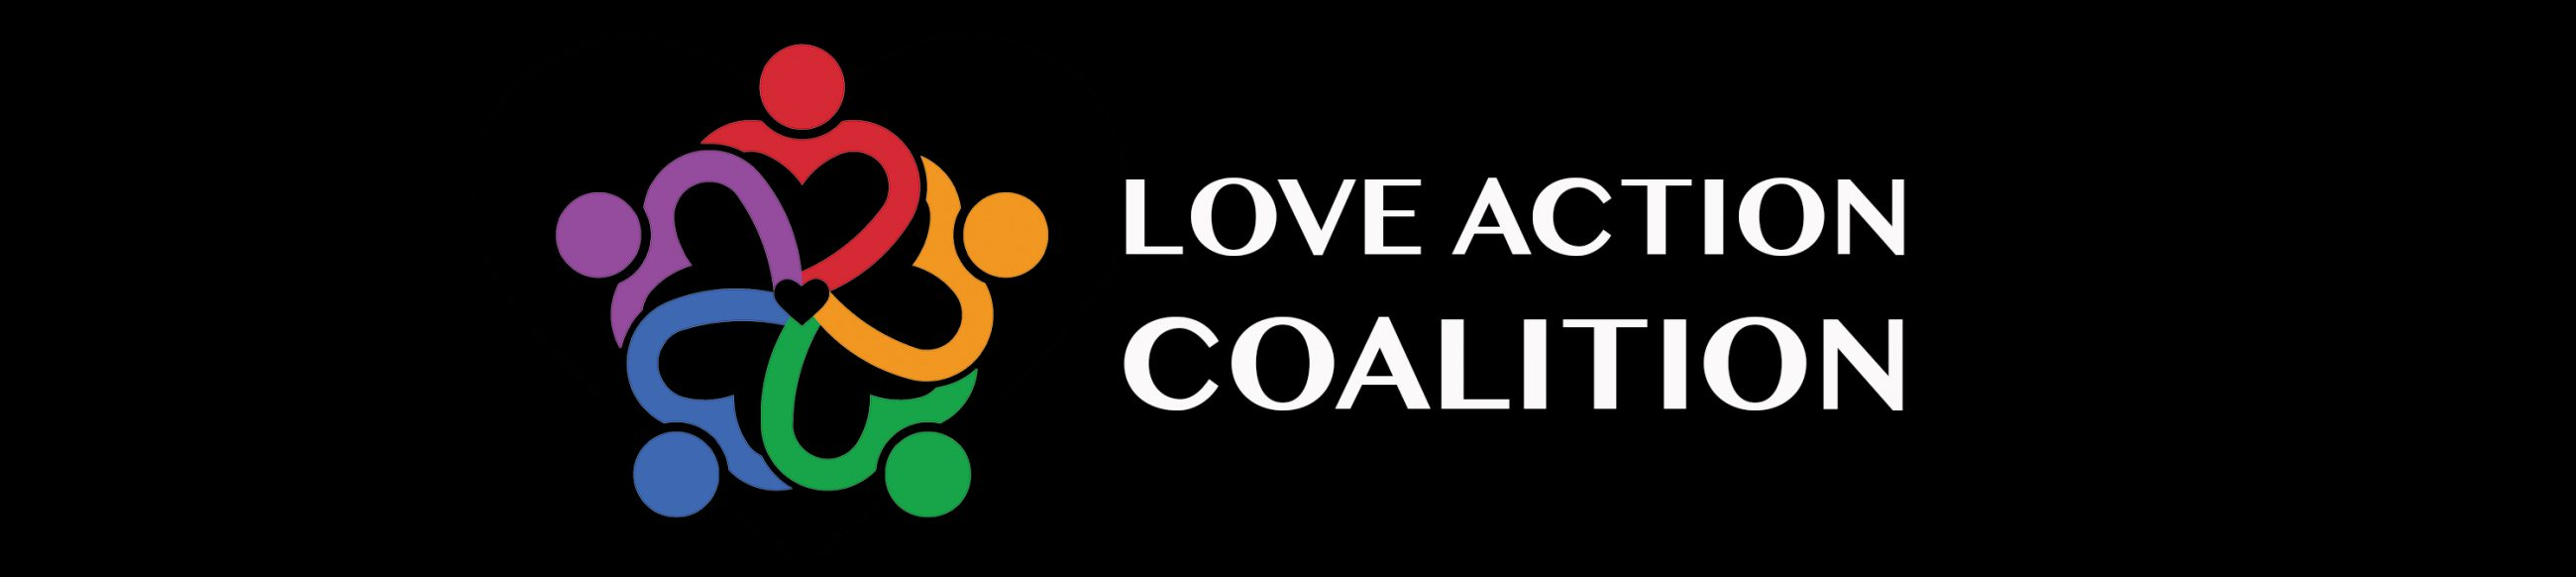 LoveActionCoalition